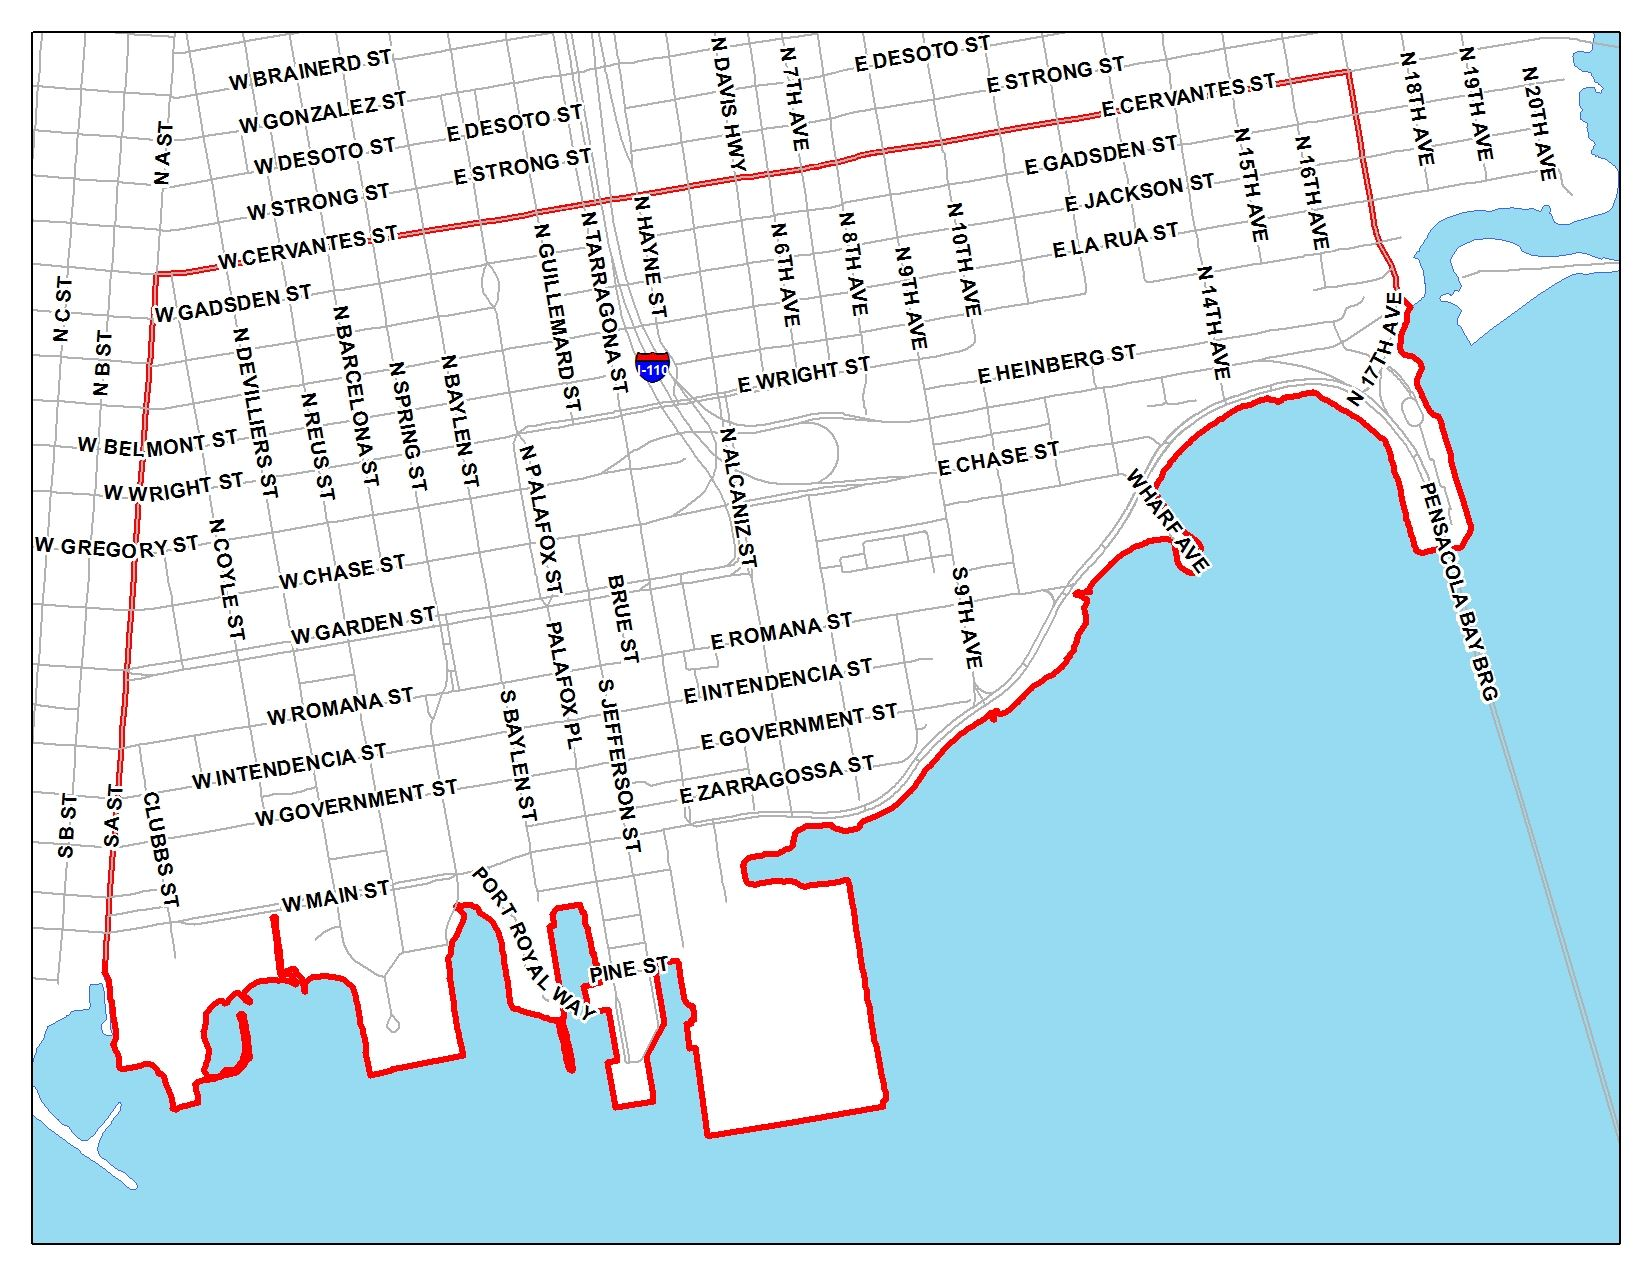 Map Of Pensacola Community Redevelopment Area Maps | City of Pensacola, Florida